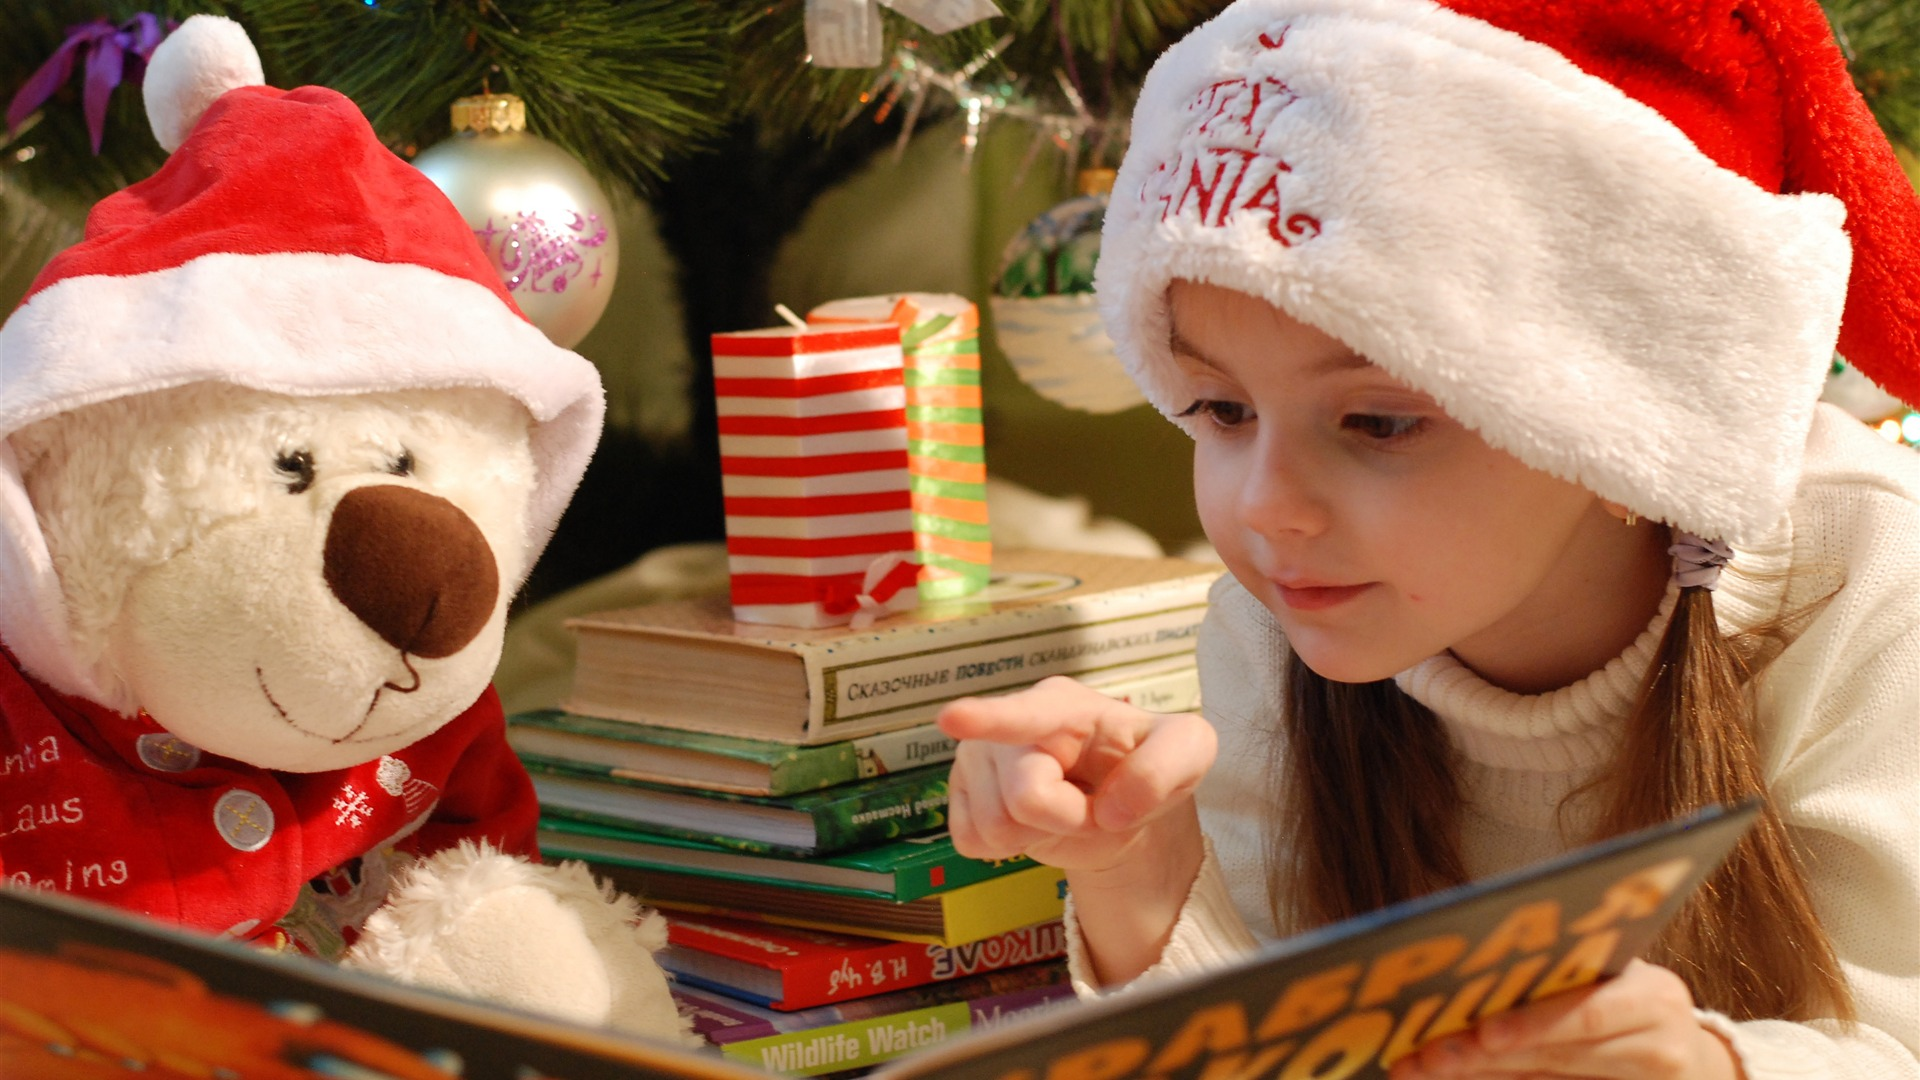 Christmas Day 2018 Story Telling Wallpaper 1920x1080